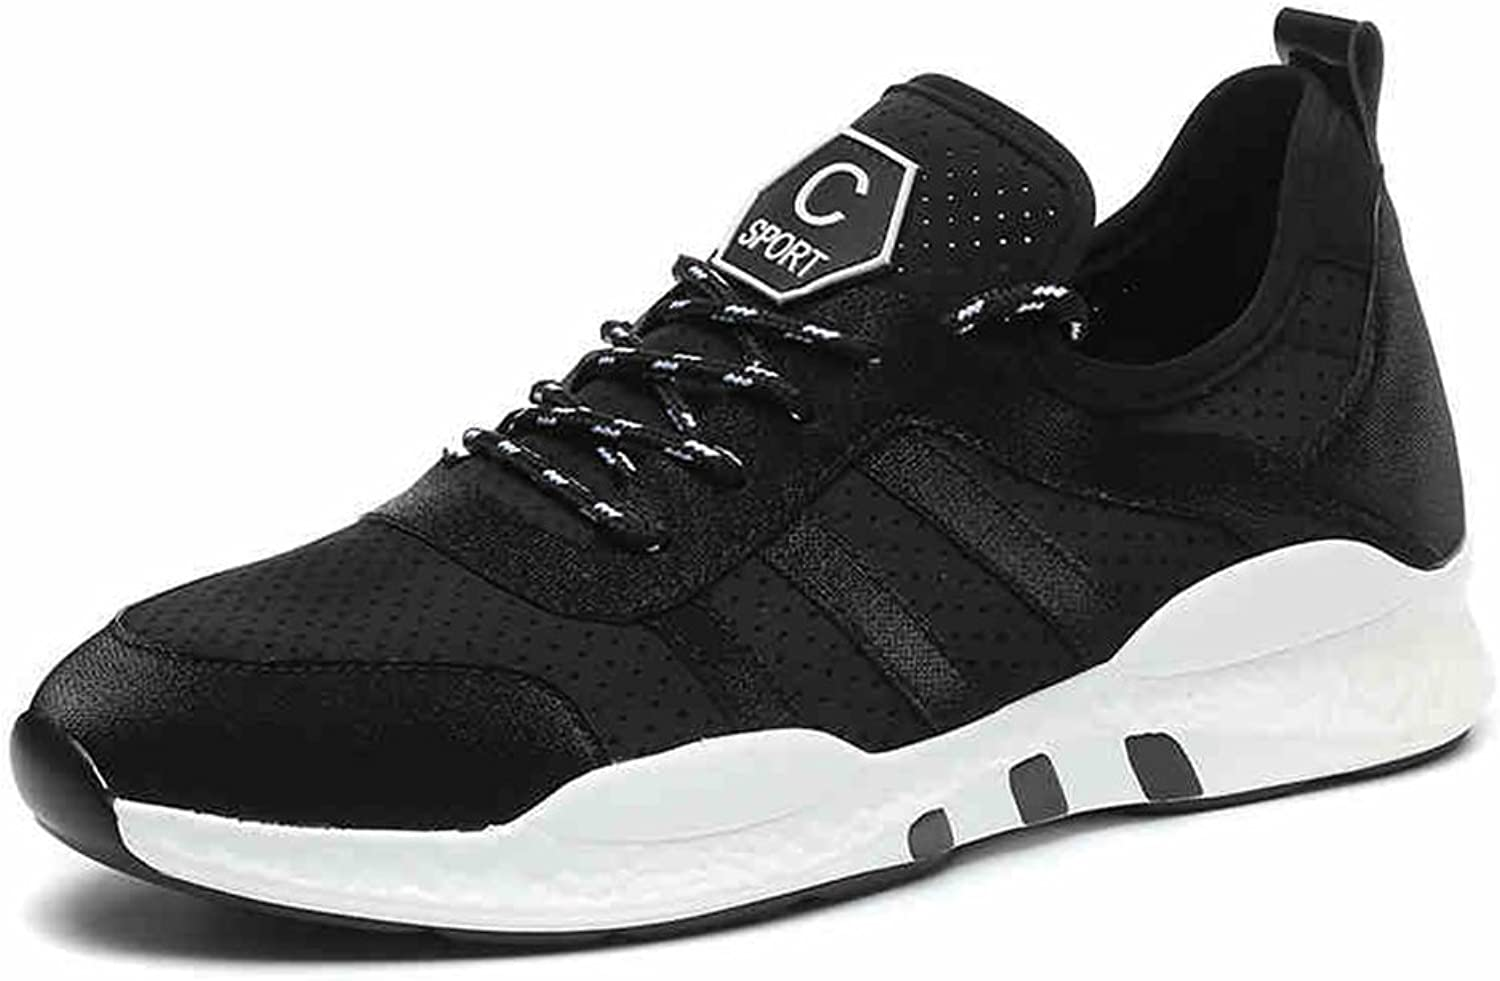 QIDI Casual shoes Male Hip-hop Outdoor Running Breathable Canvas shoes (Size   EU40 UK7)